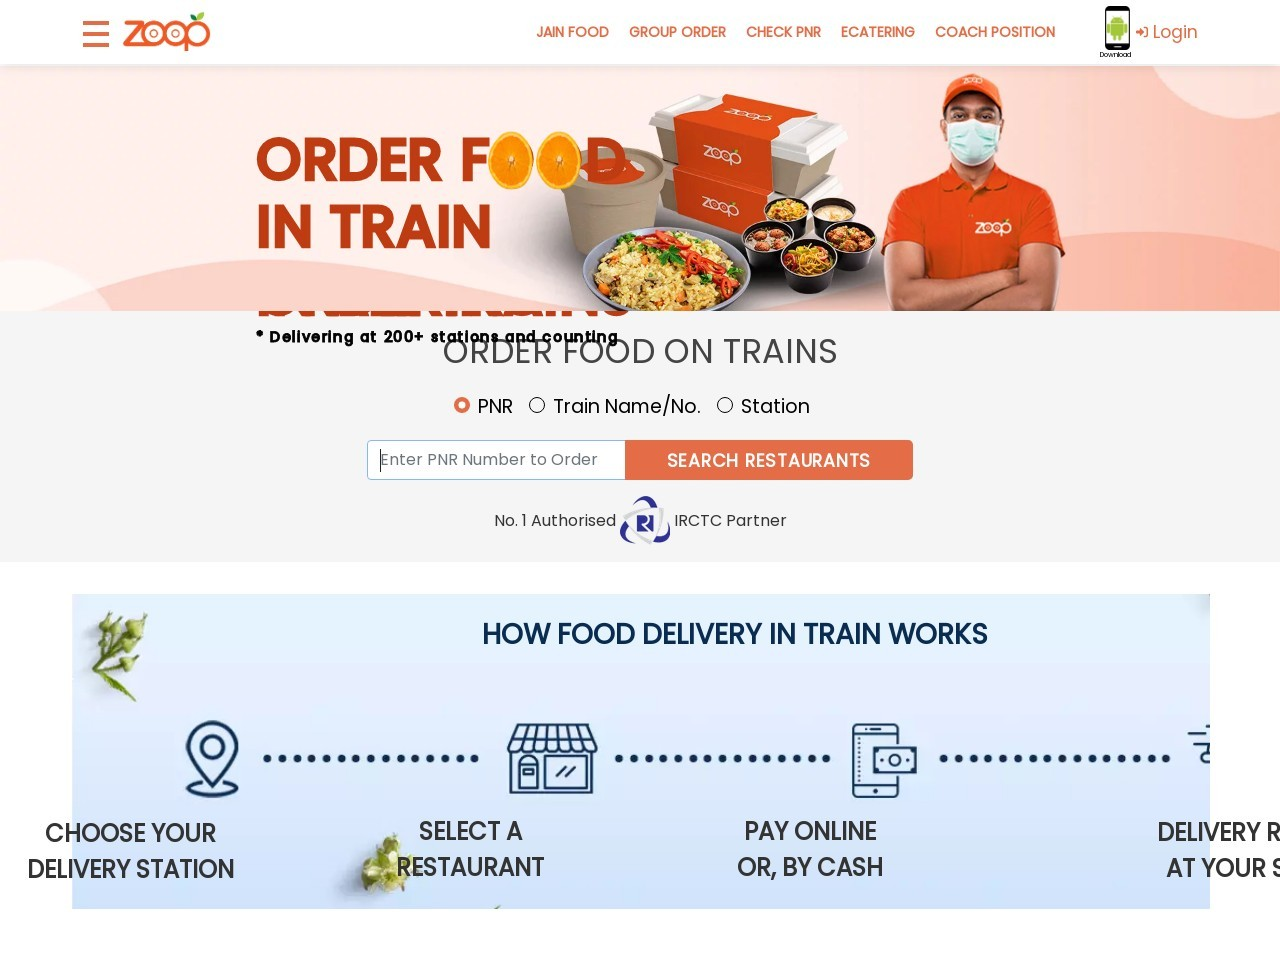 Order Meals on Rail Online at Kannur Railway Station | Delivery in Train | IRCTC Zoop eCatering